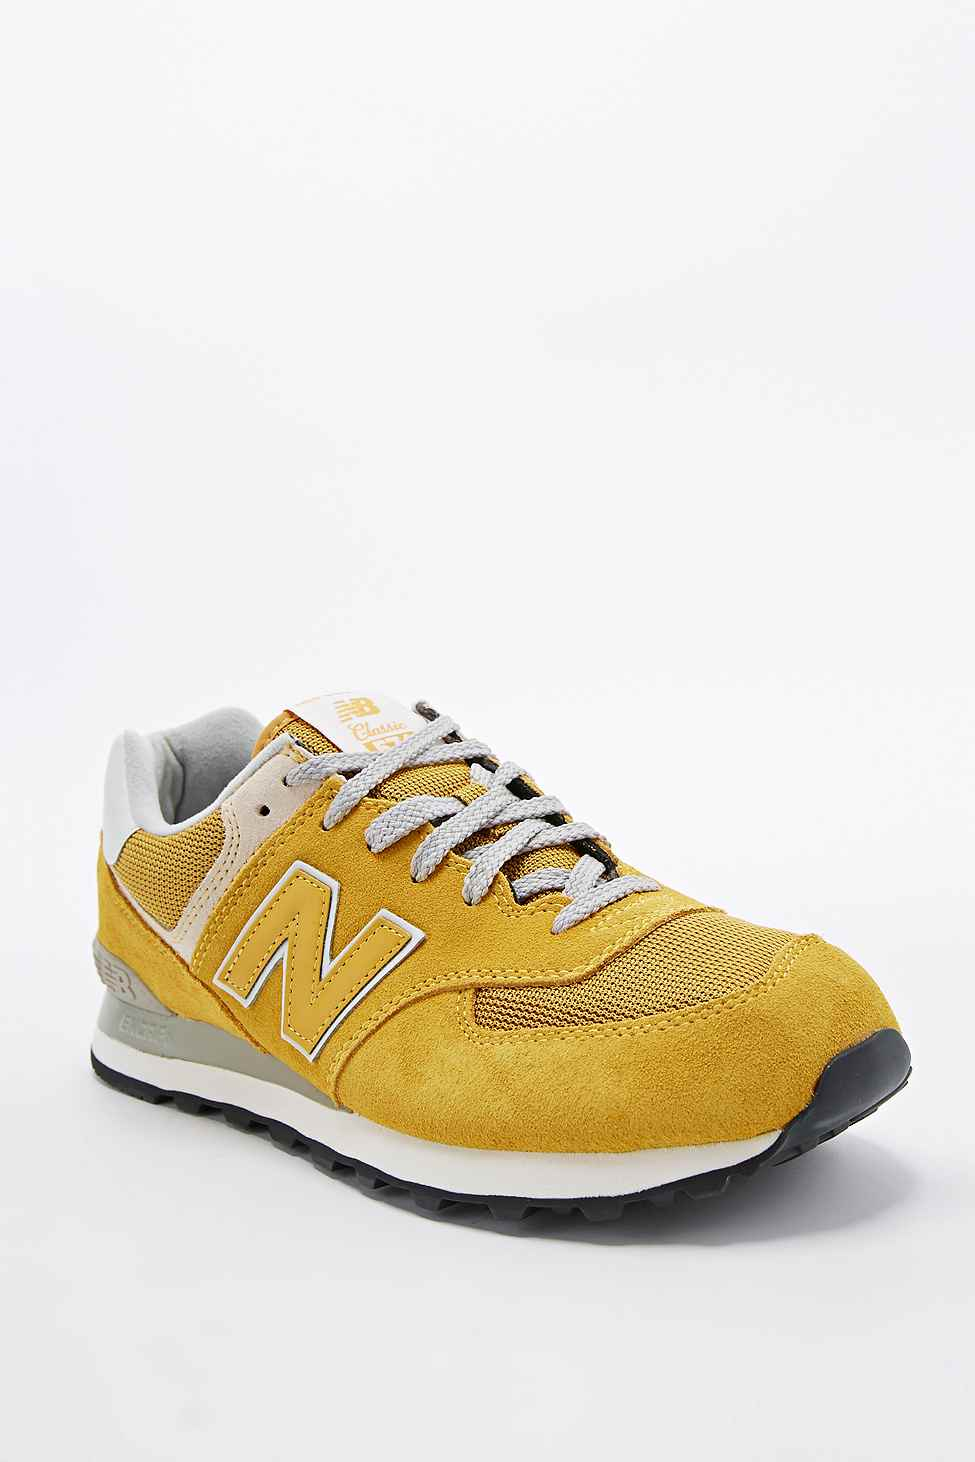 sale retailer e15cf 7e5ef New Balance 574 Classic Running Trainers In Mustard in ...